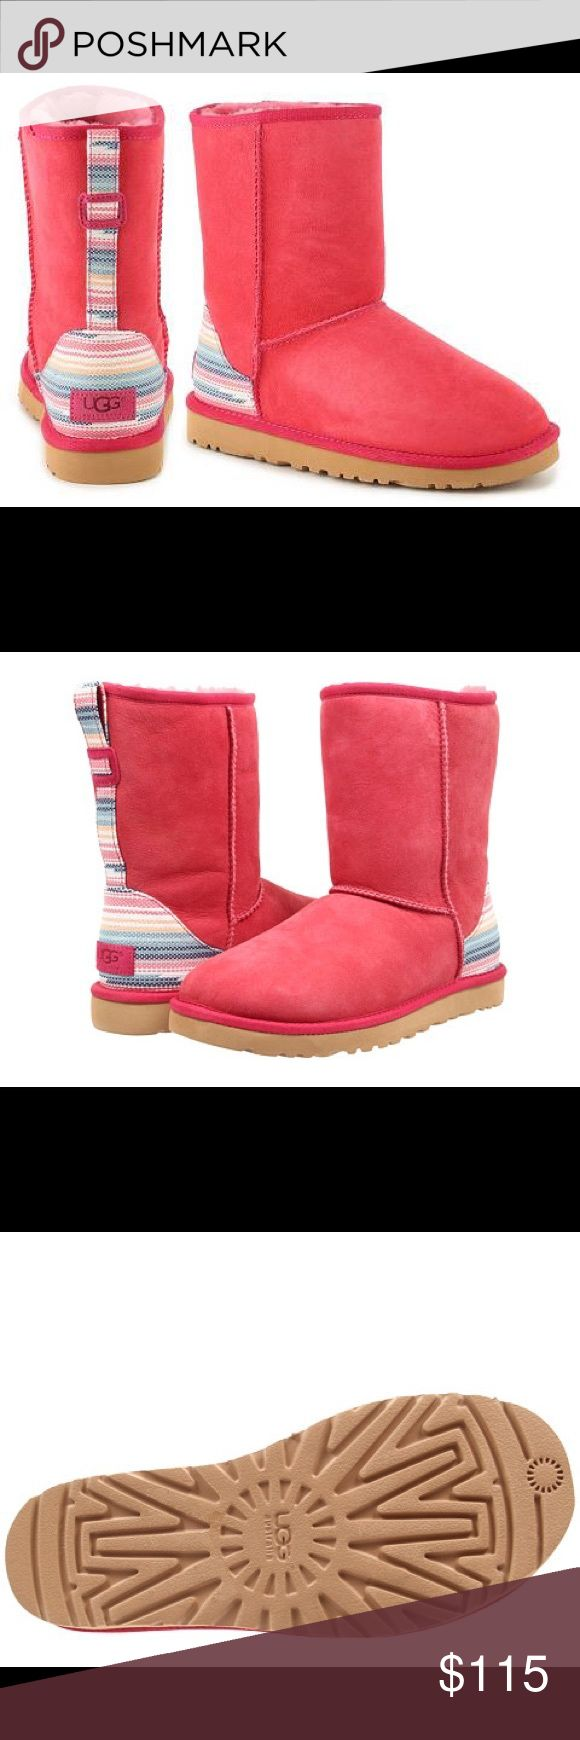 UGG CLASSIC SHORT SERAPE Size 7 . Sunset red  with stripe pattern on heel and up the back. UGG Shoes